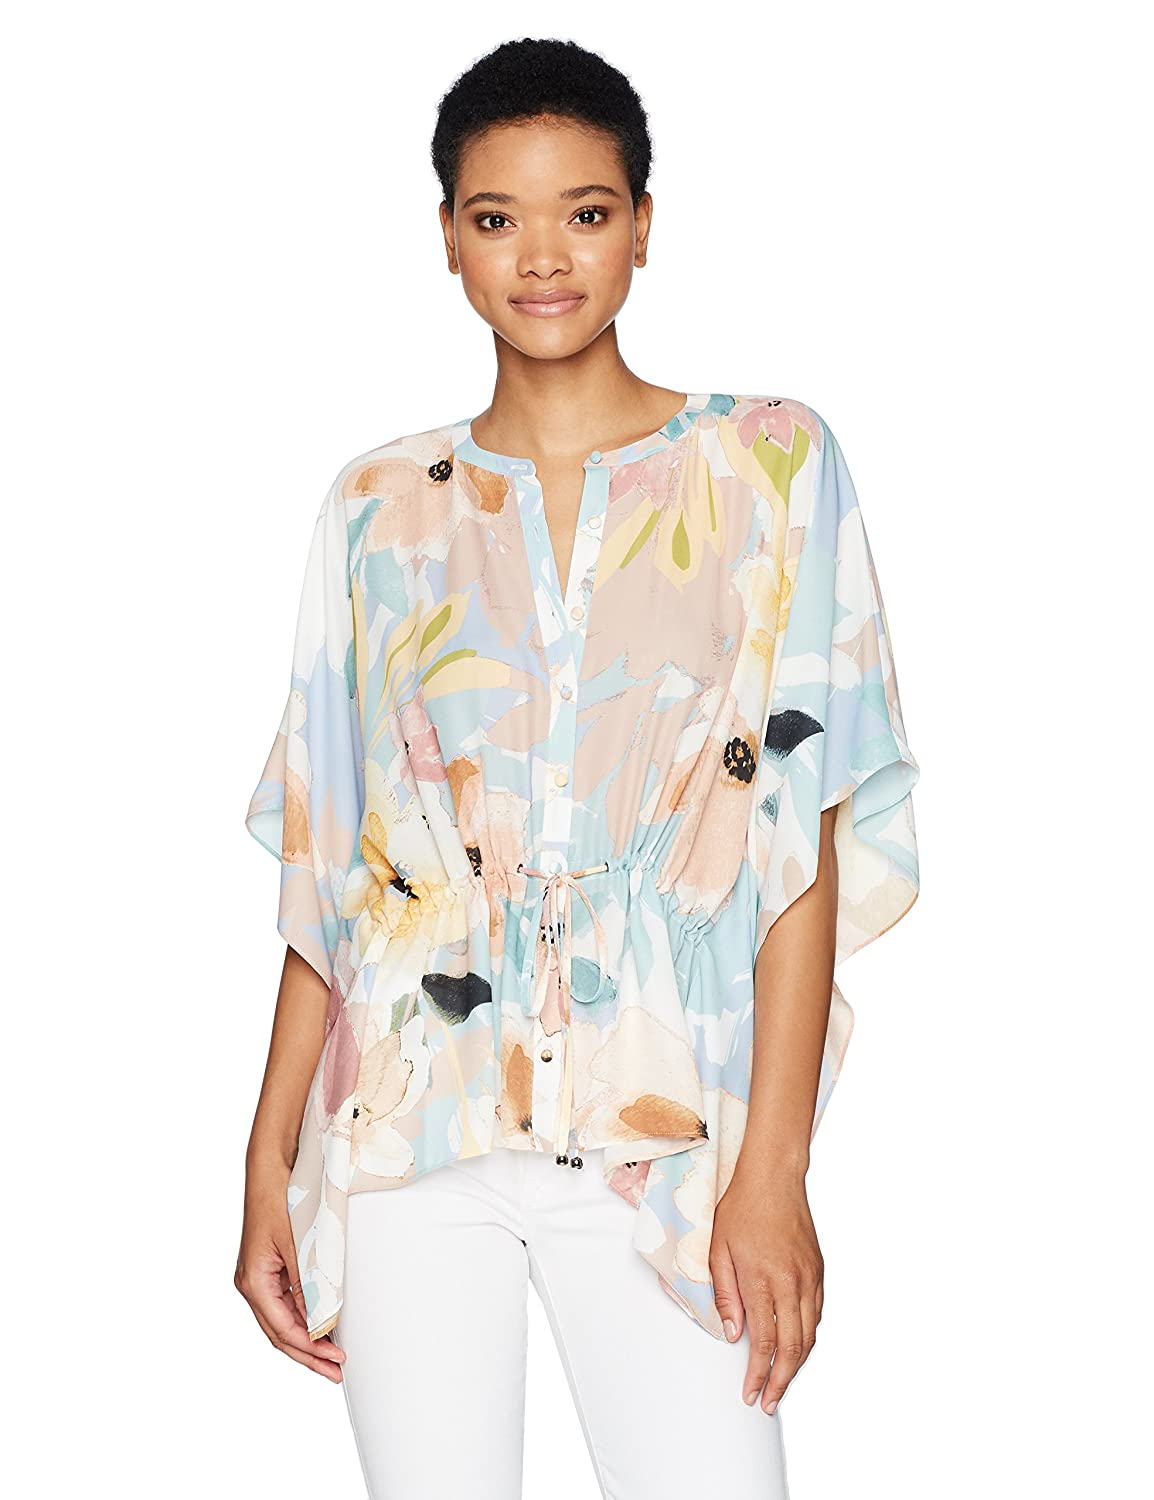 Watercolor Floral Catherine Malandrino Womens Komai Blouse  Floral Blouse